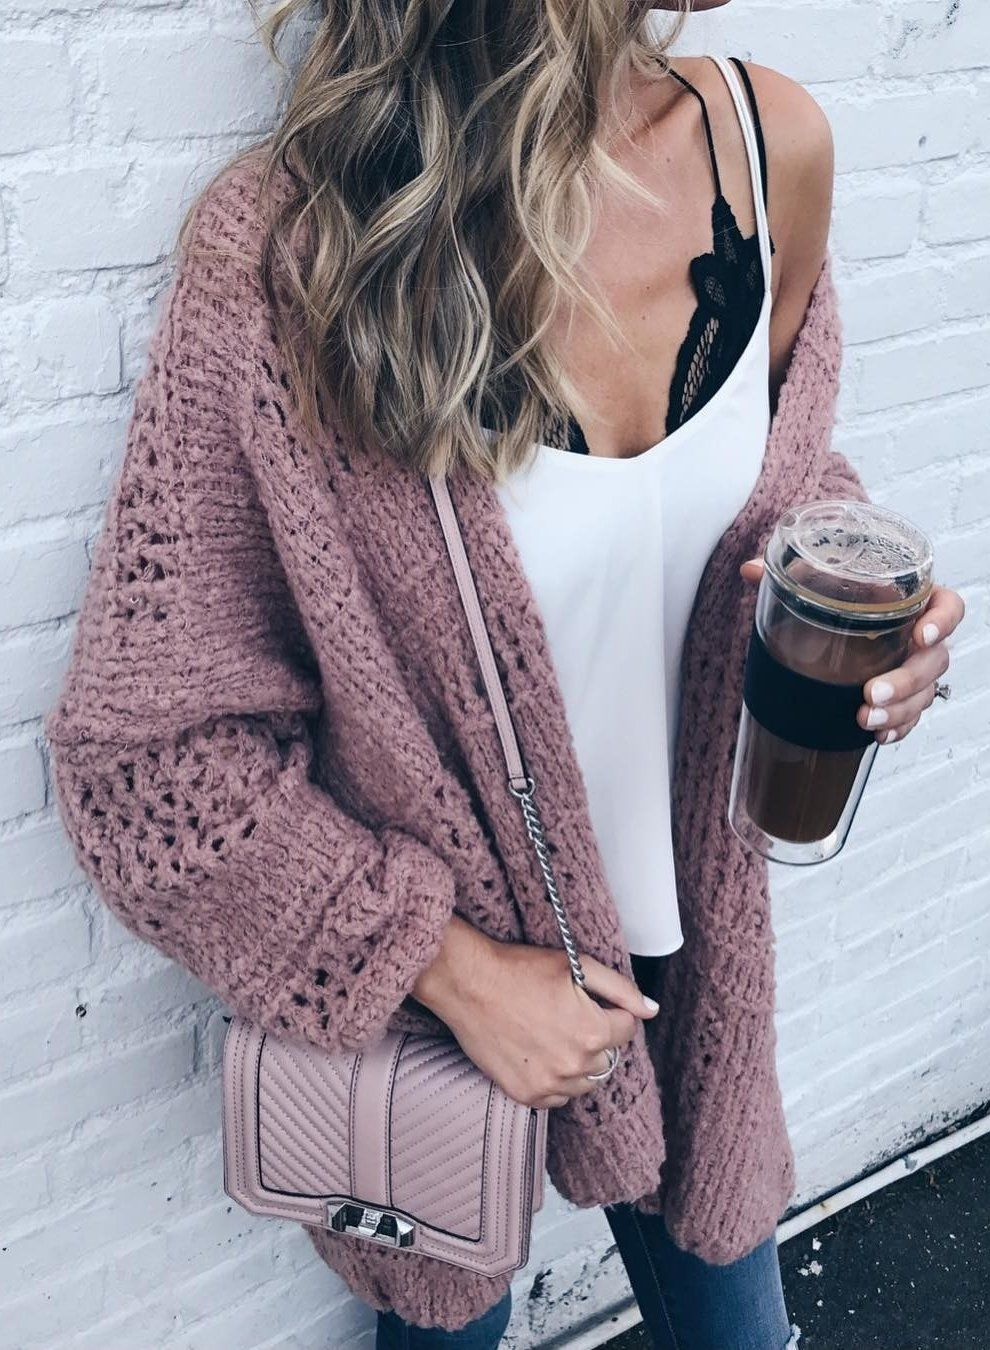 Pink sweater dress outfit   Catchy Fall Outfits To Update Your Wardrobe  Maroon sweater